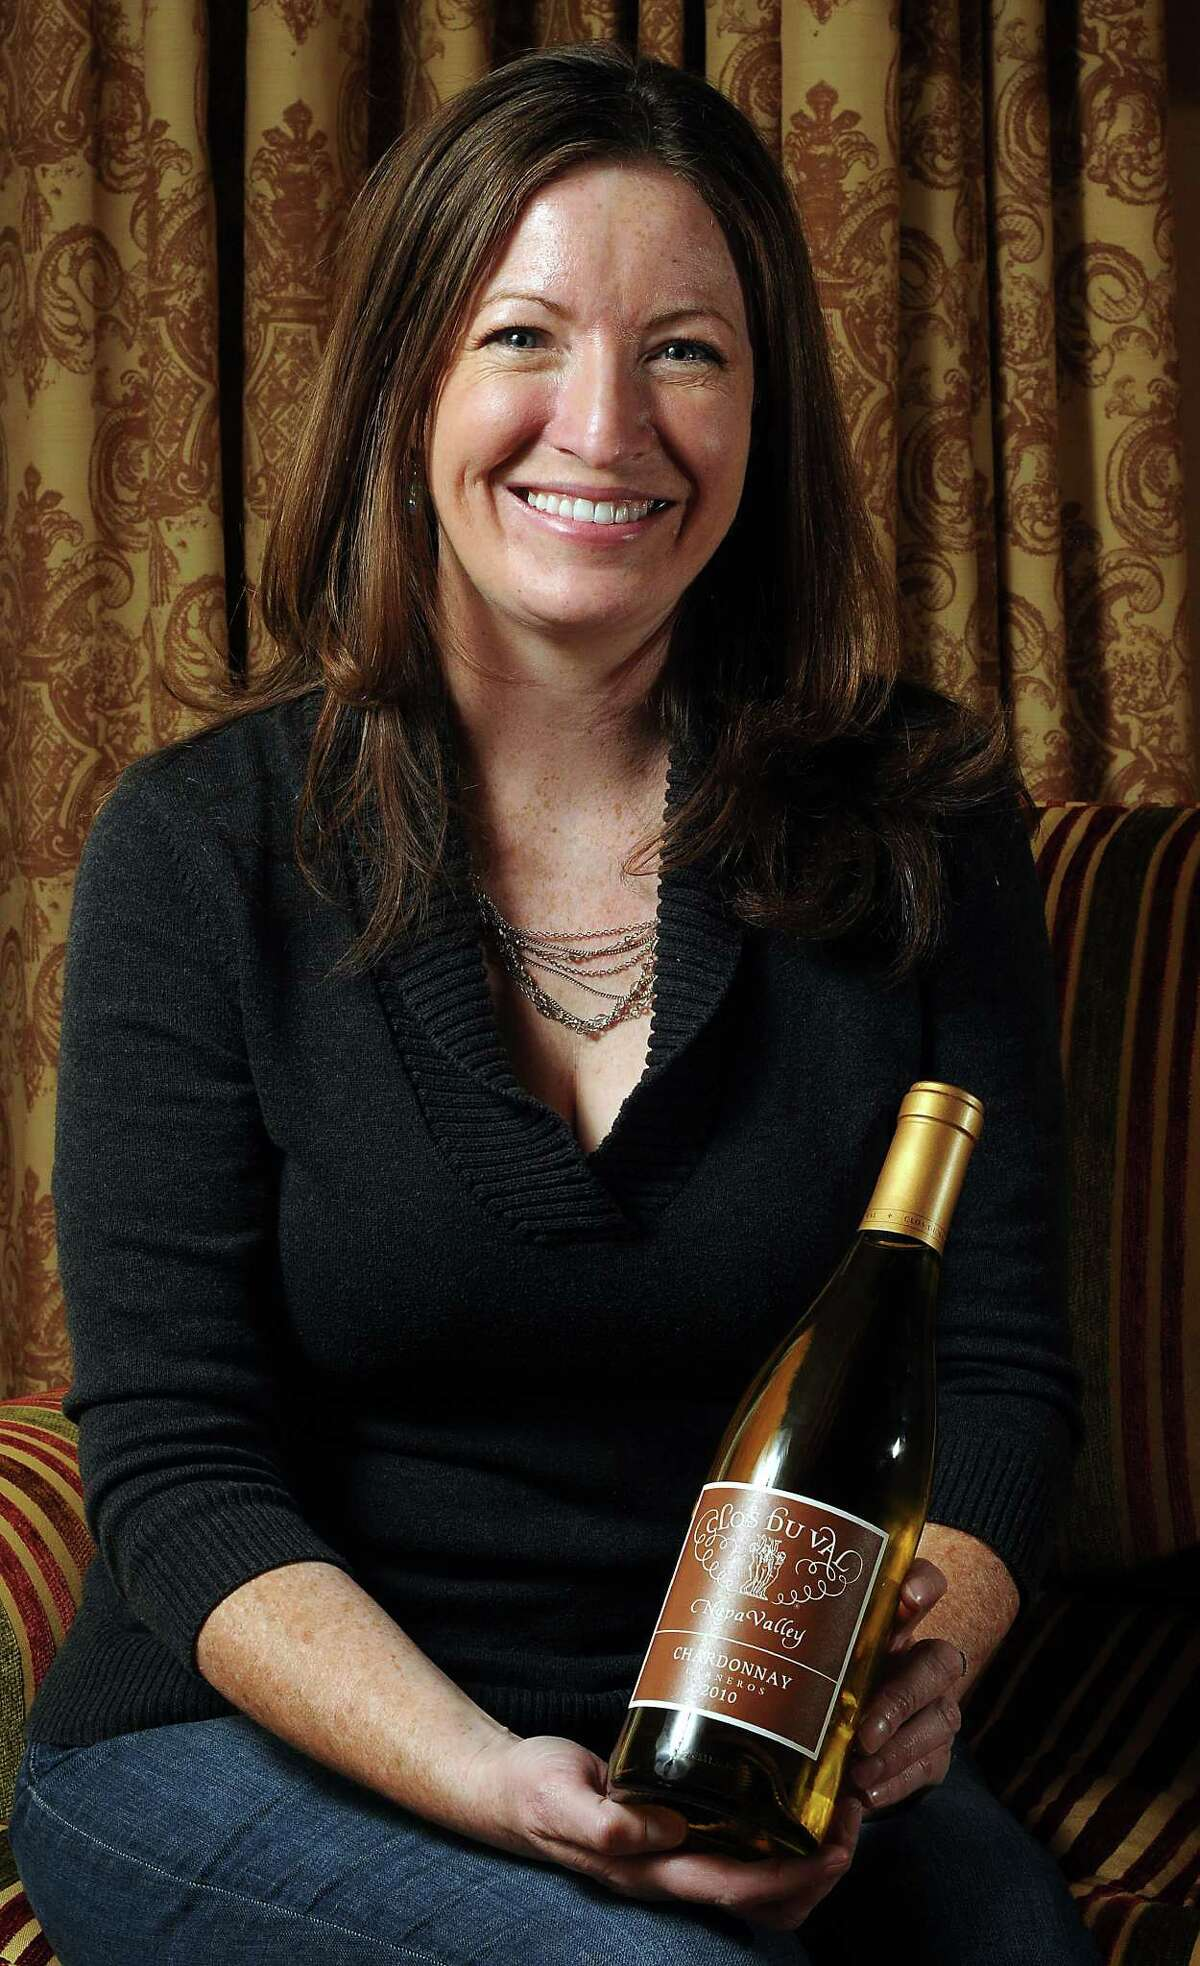 Kristy Melton, a winemaker for Clos du Val, with their 2010 Chardonnay Carneros Wednesday Jan 15 2014.(Dave Rossman photo)